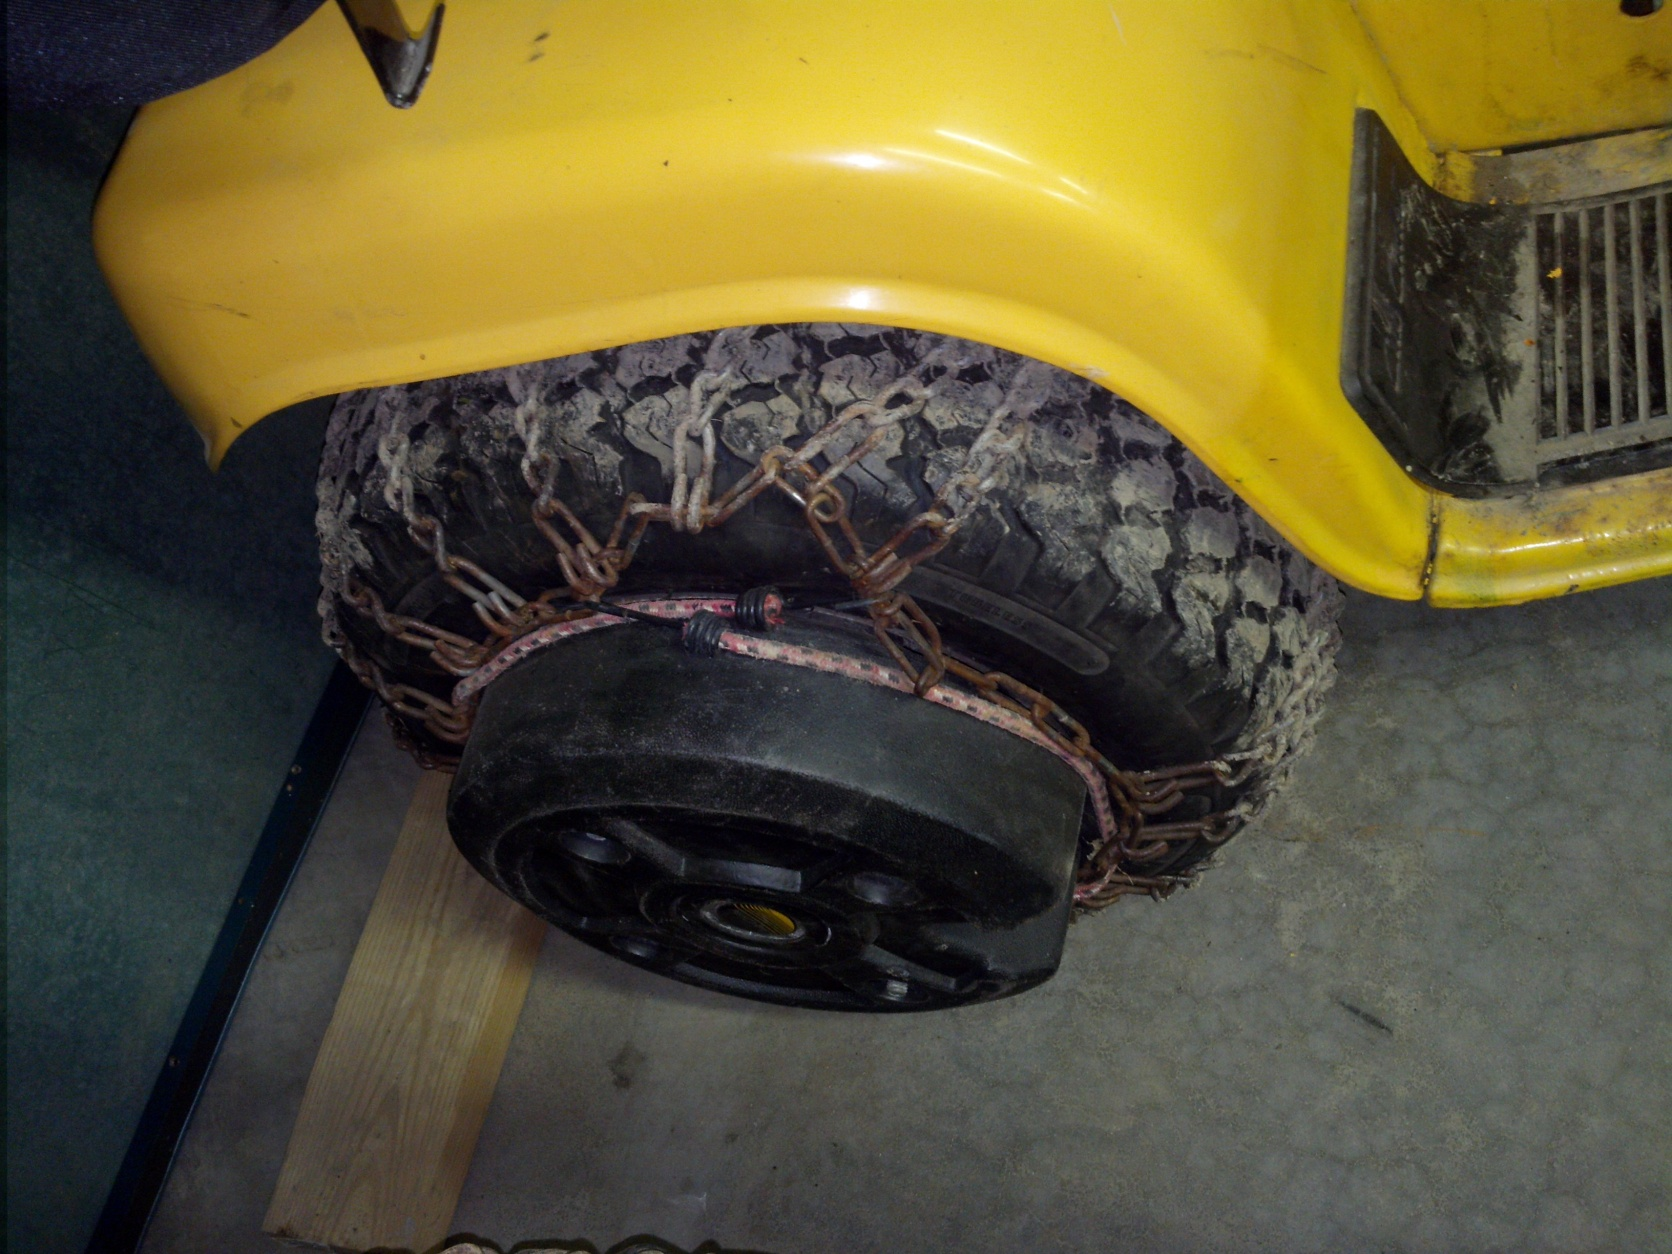 Cub Cadet 1641 locked differential? - MyTractorForum com - The